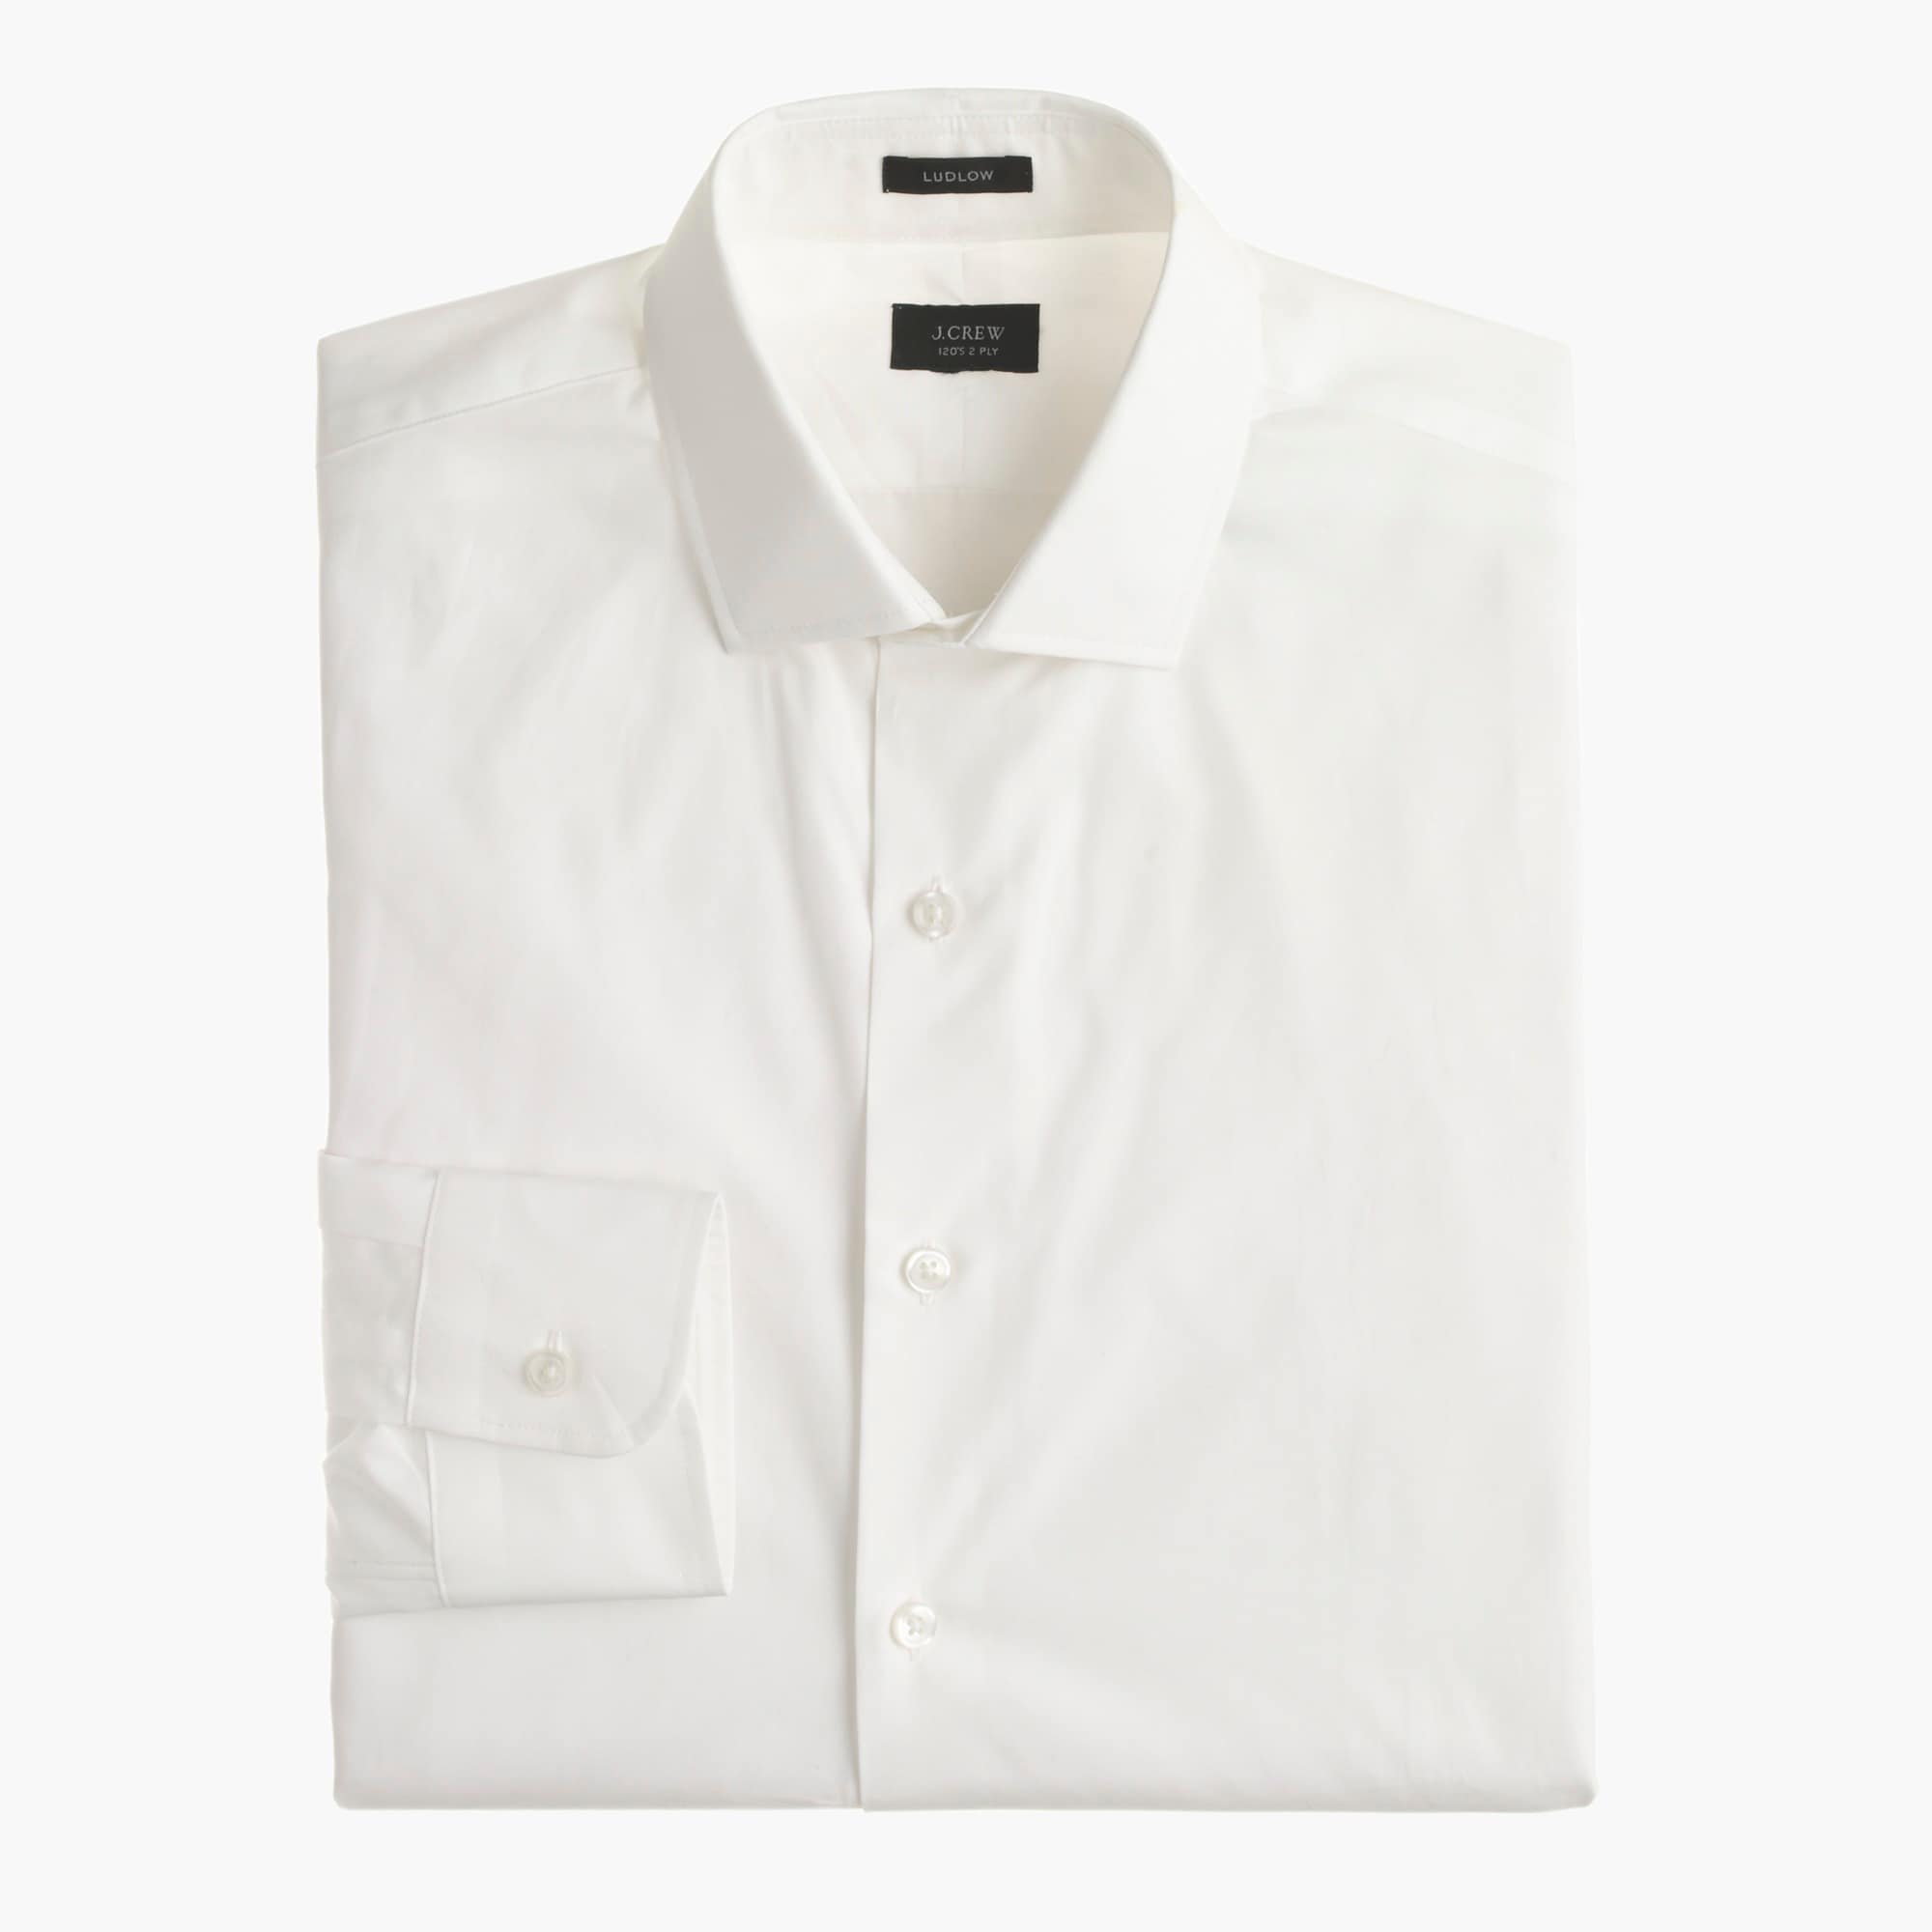 Image 2 for Tall Ludlow spread-collar shirt with convertible cuffs